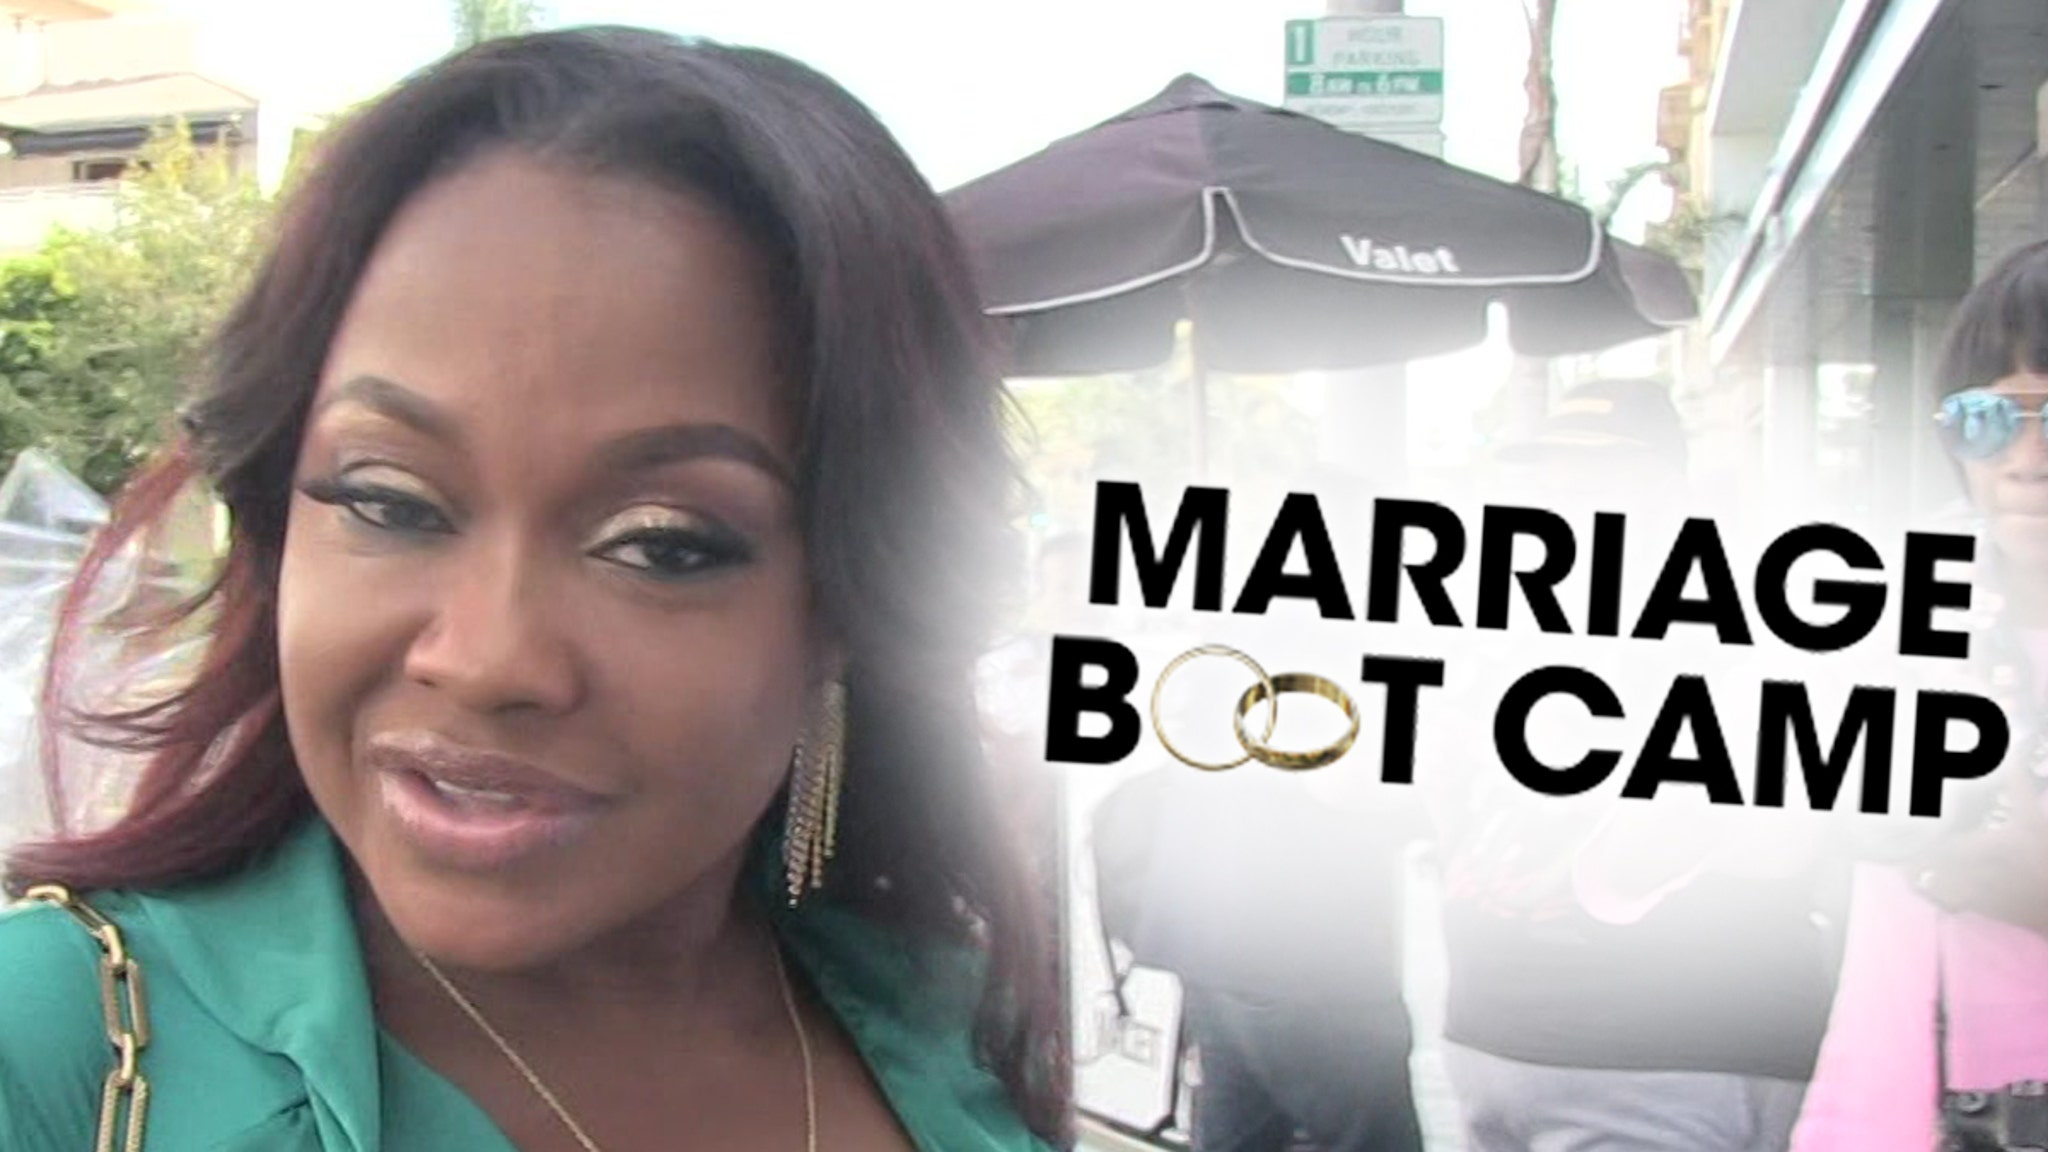 Phaedra Parks Ready For 'Marriage Boot Camp'